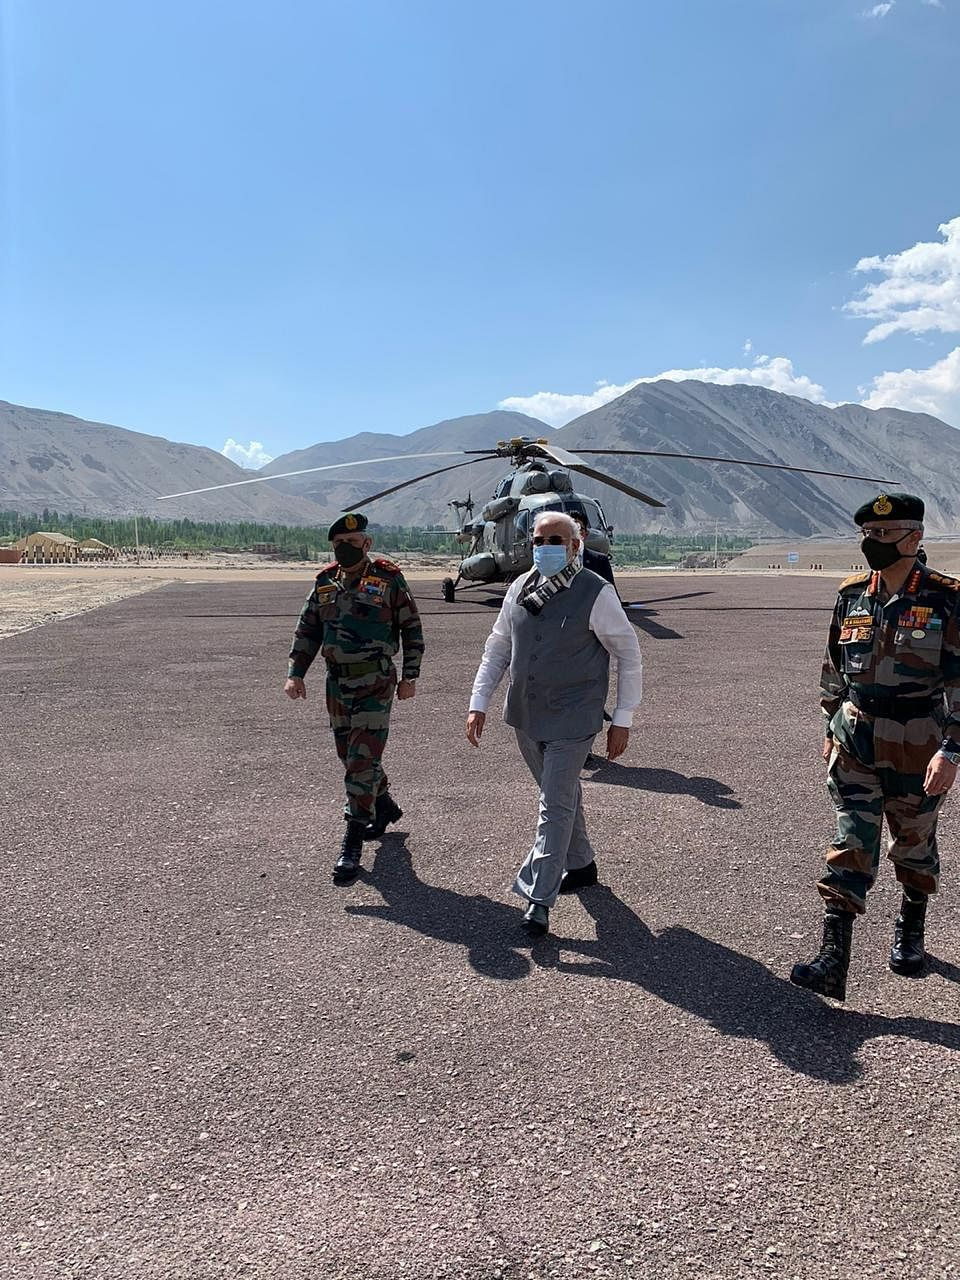 Prime Minister NArendra Modi is accompanied by the Chief of Defence Staff and the Army Chief. (Source: PIB)